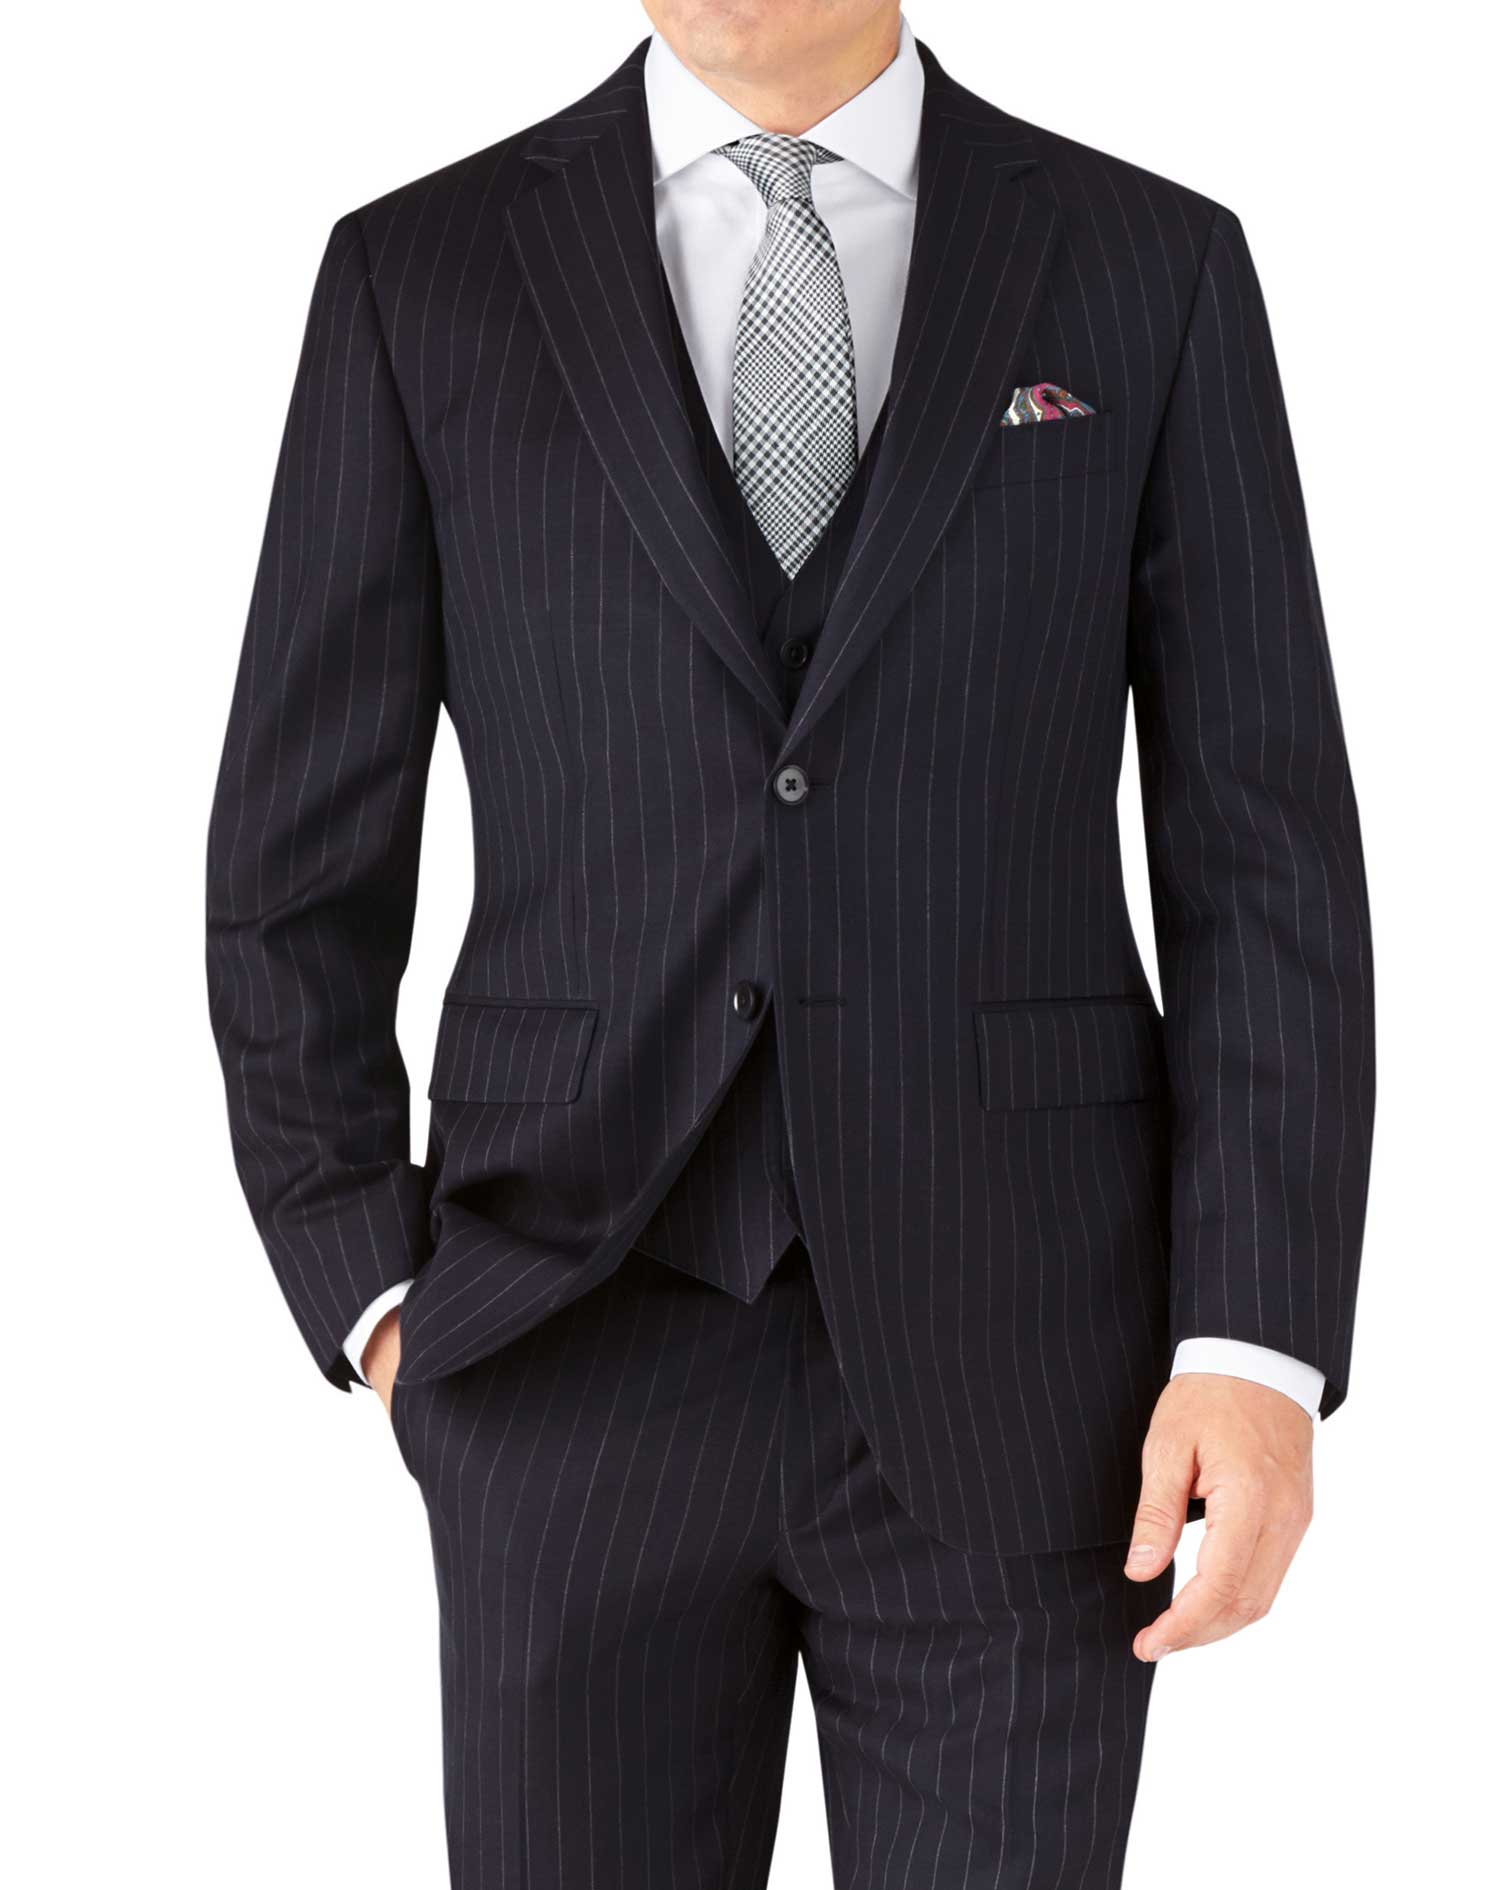 Navy Stripe Classic Fit Twill Business Suit Wool Jacket Size 44 Short by Charles Tyrwhitt